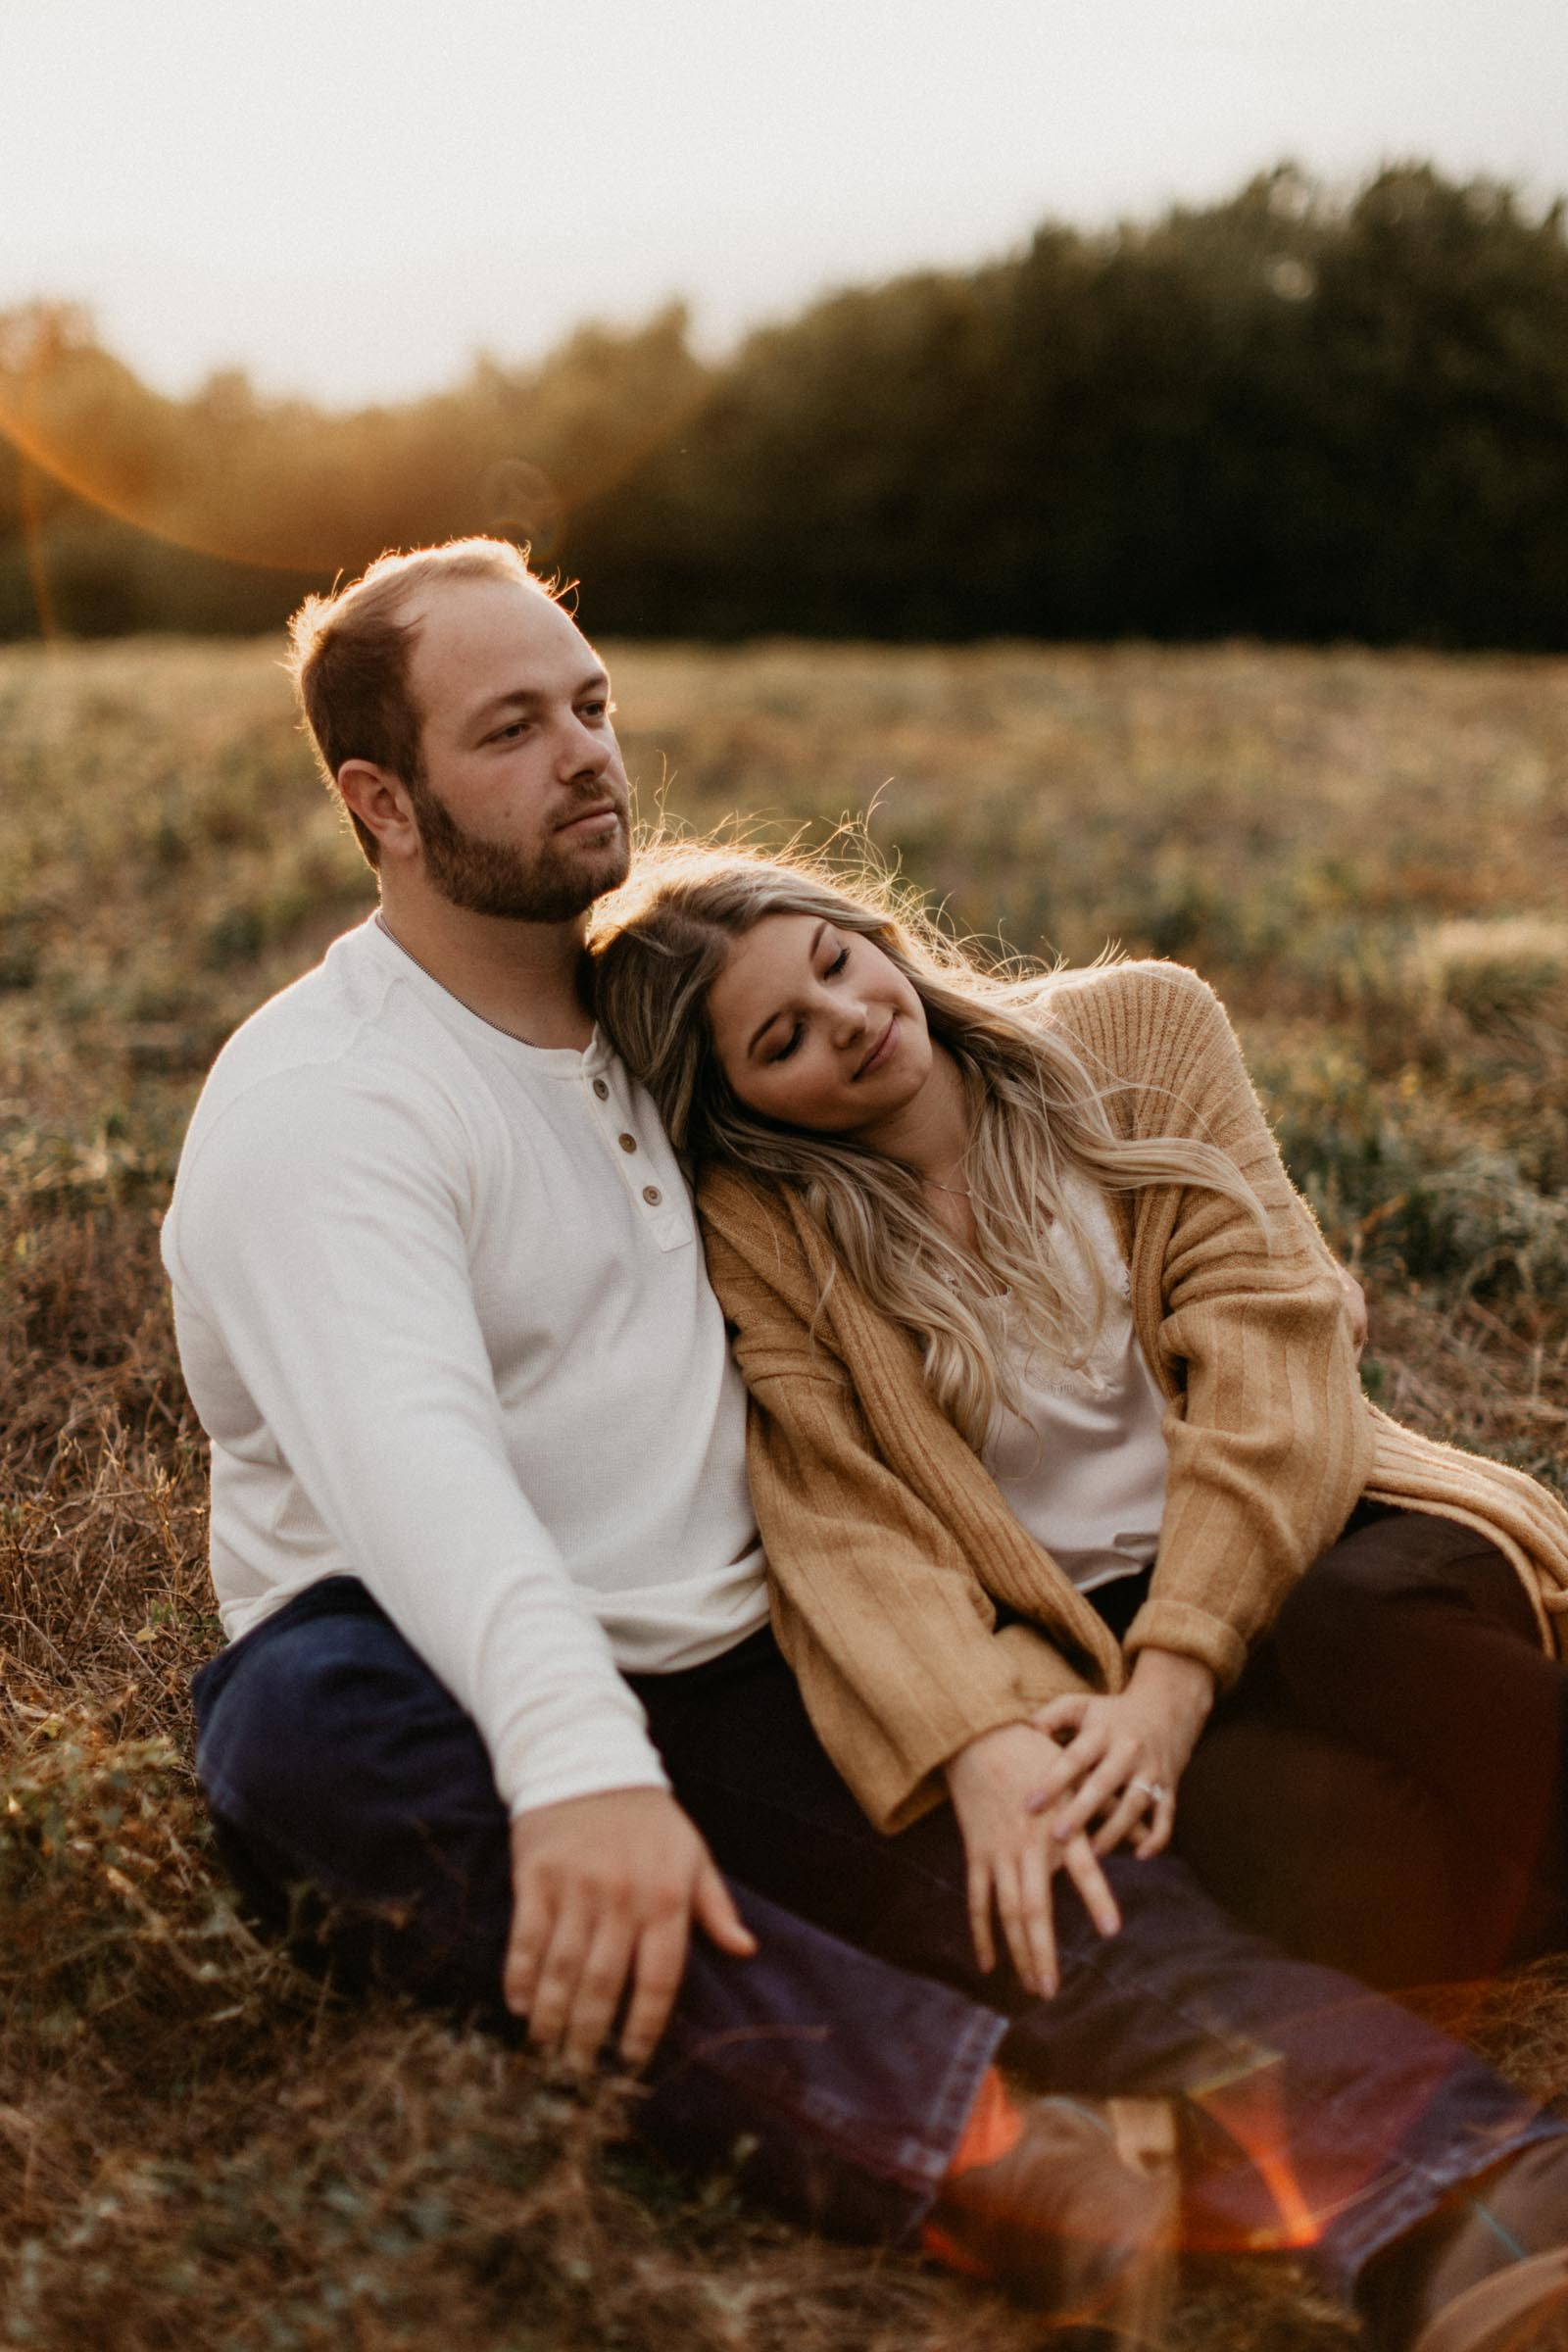 Boy and girl sitting in the grass during golden hour cuddling during fall